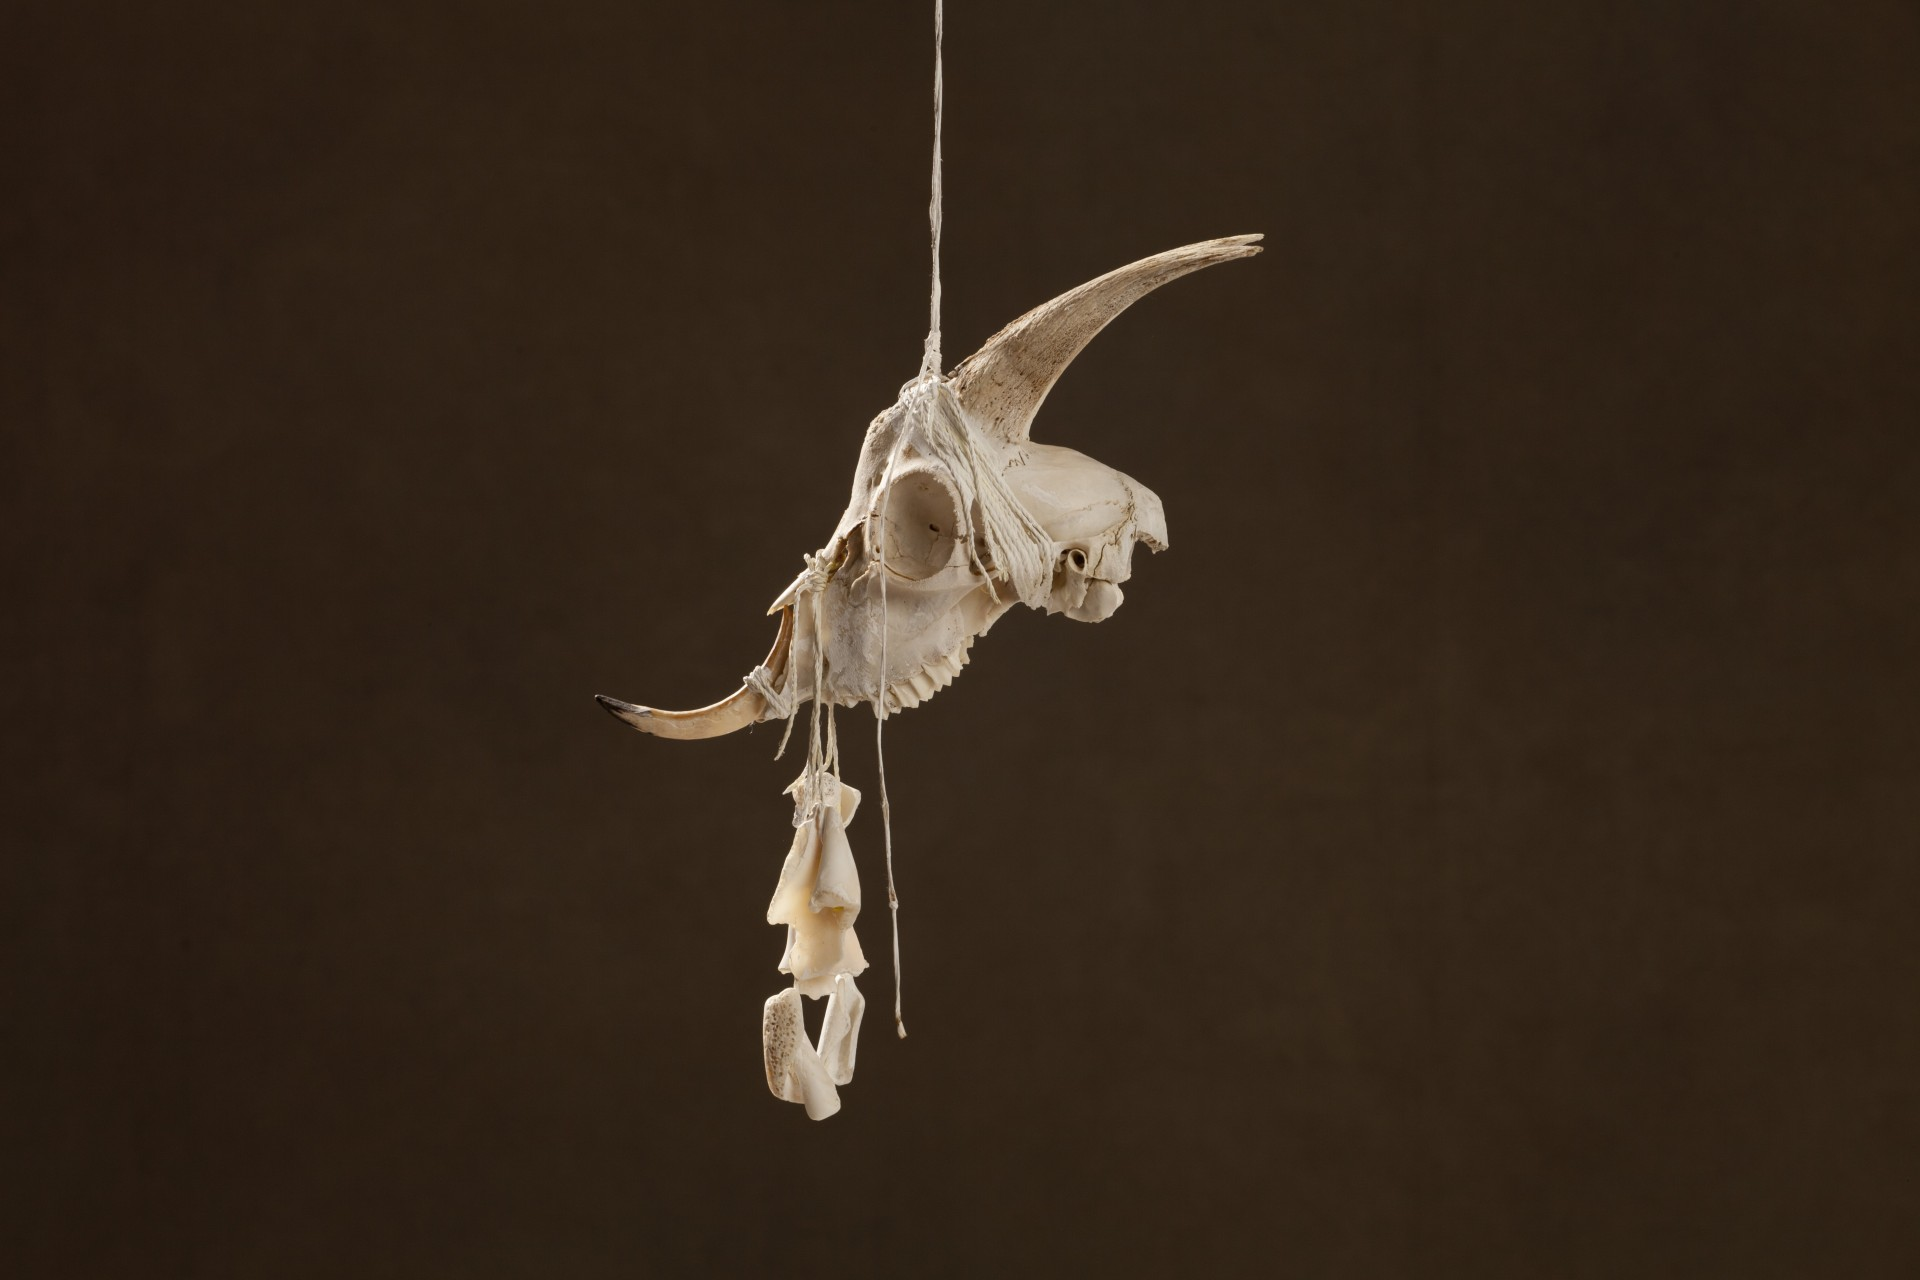 Dragon Arawak, 2010 29 x 11 x 29 cm / 11.4 x 4.3 x 11.4 inches Mixed Media / goat Skull